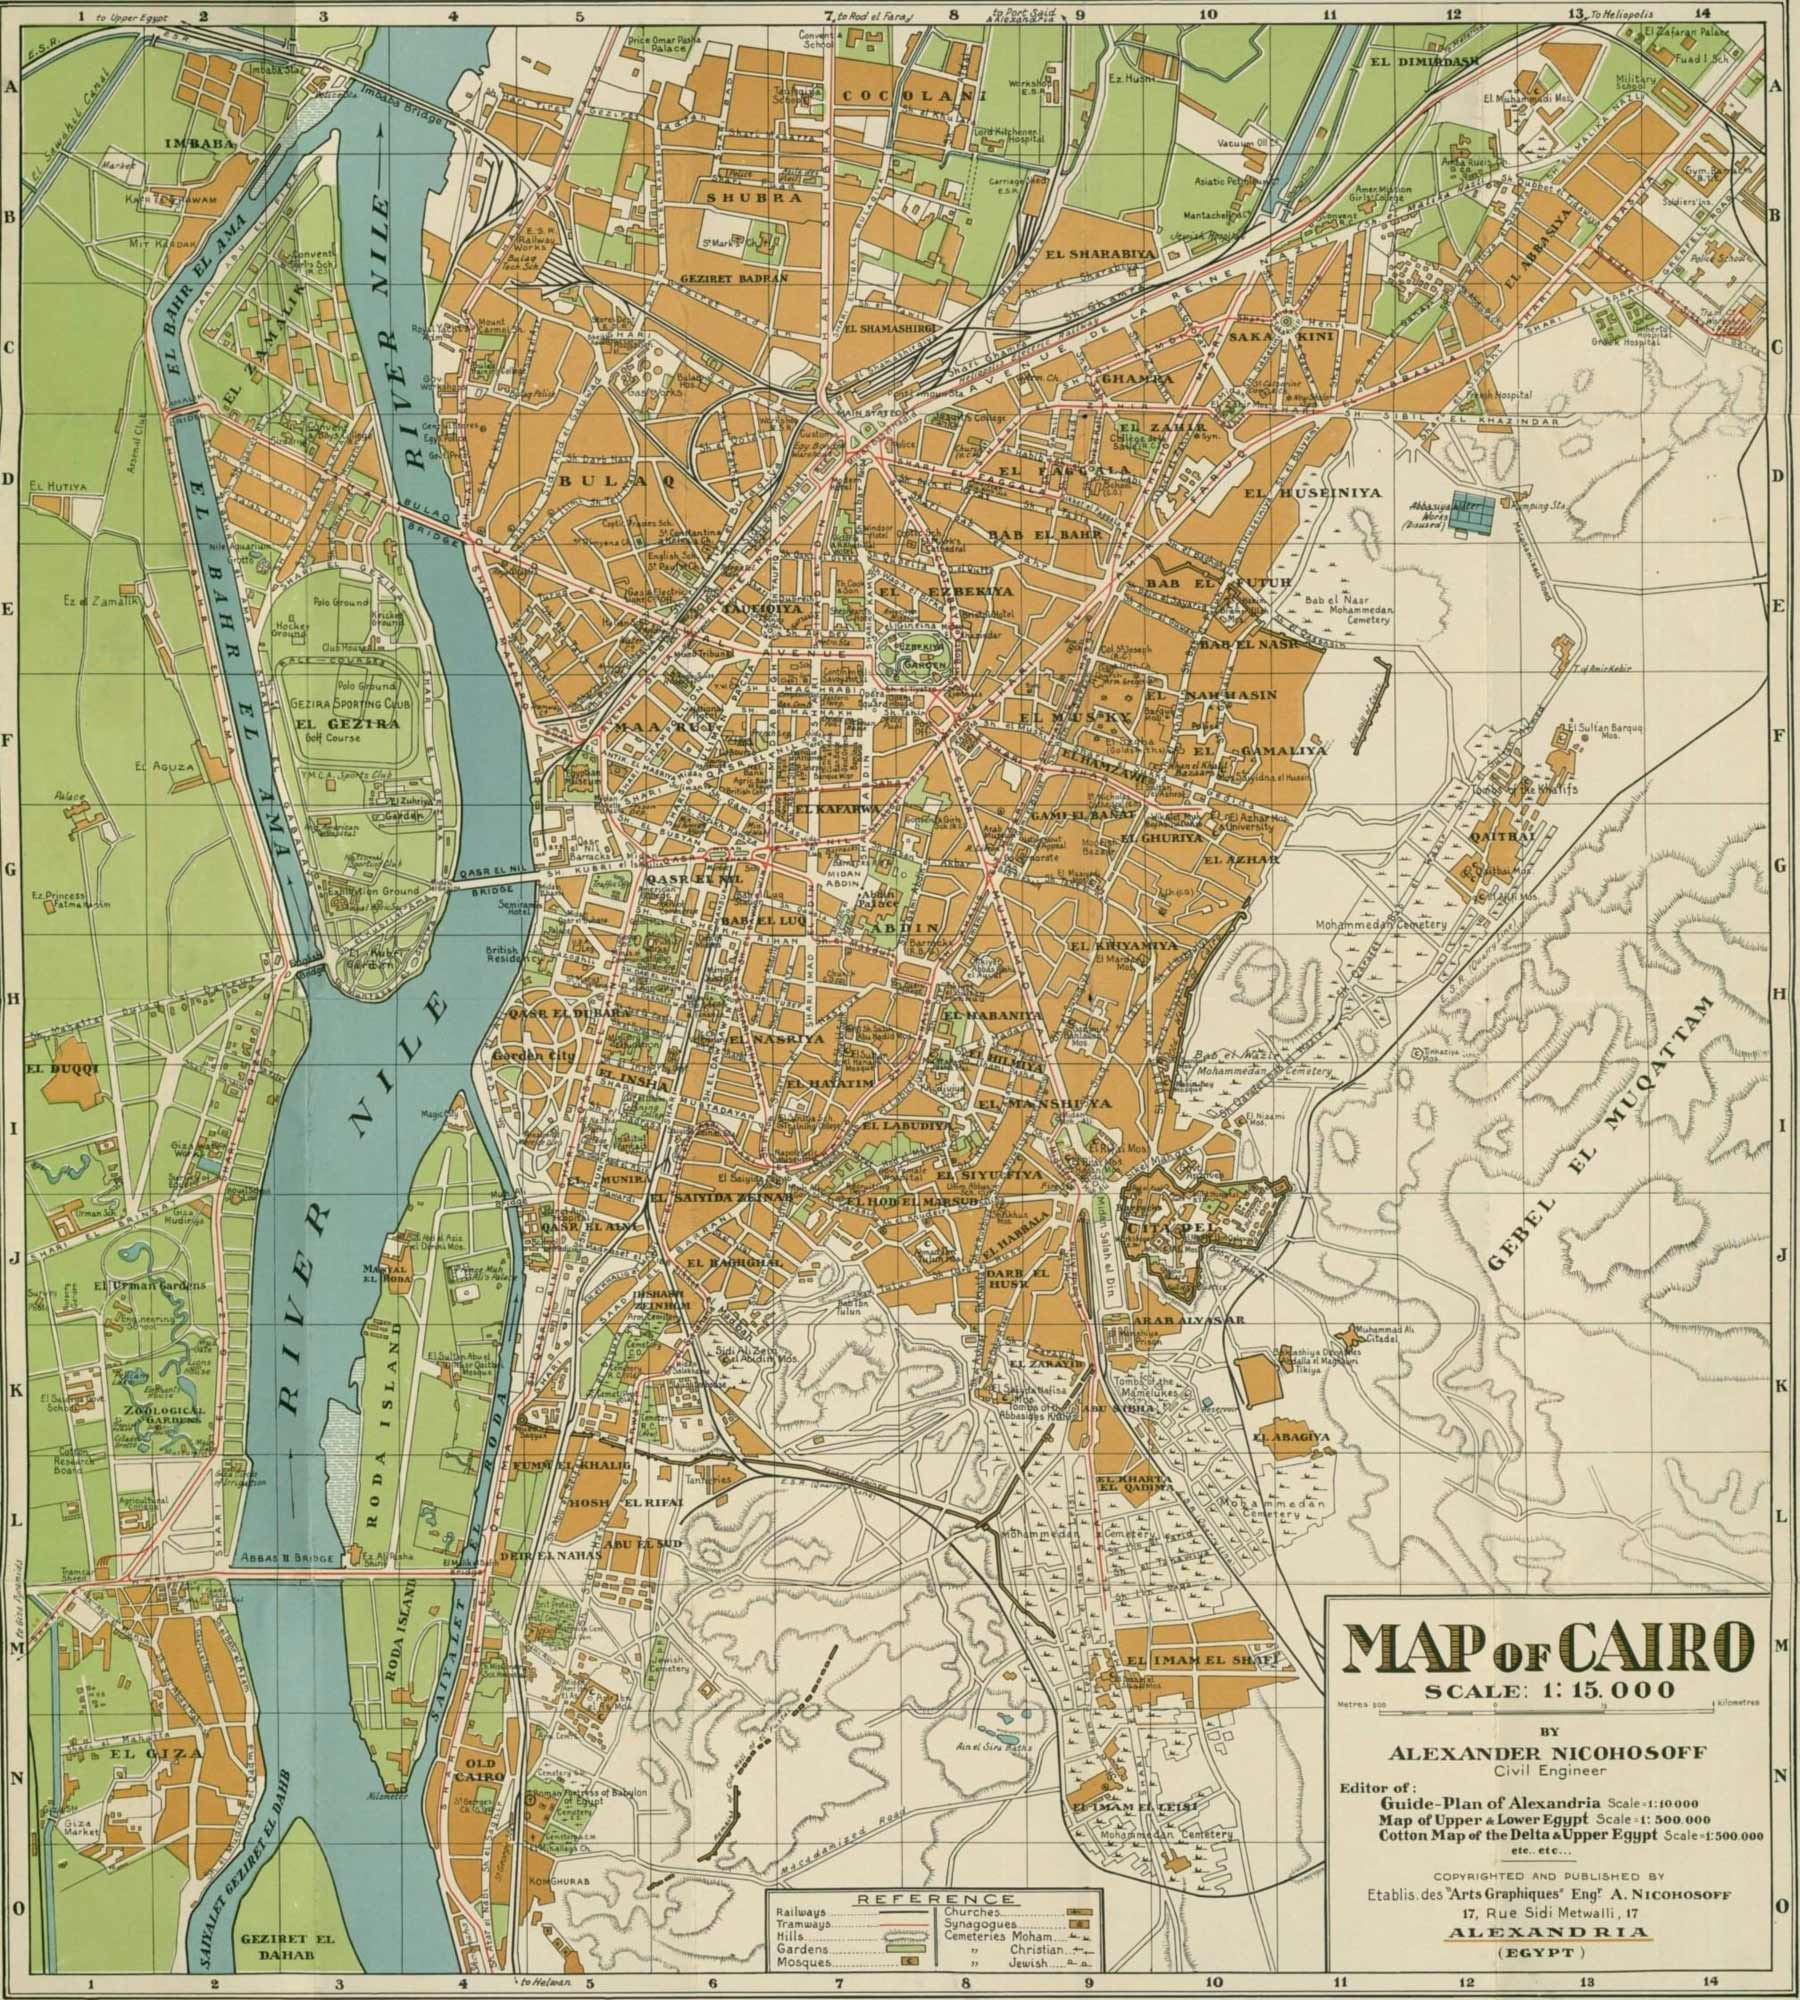 Cairo Map1933 Nicohosoff